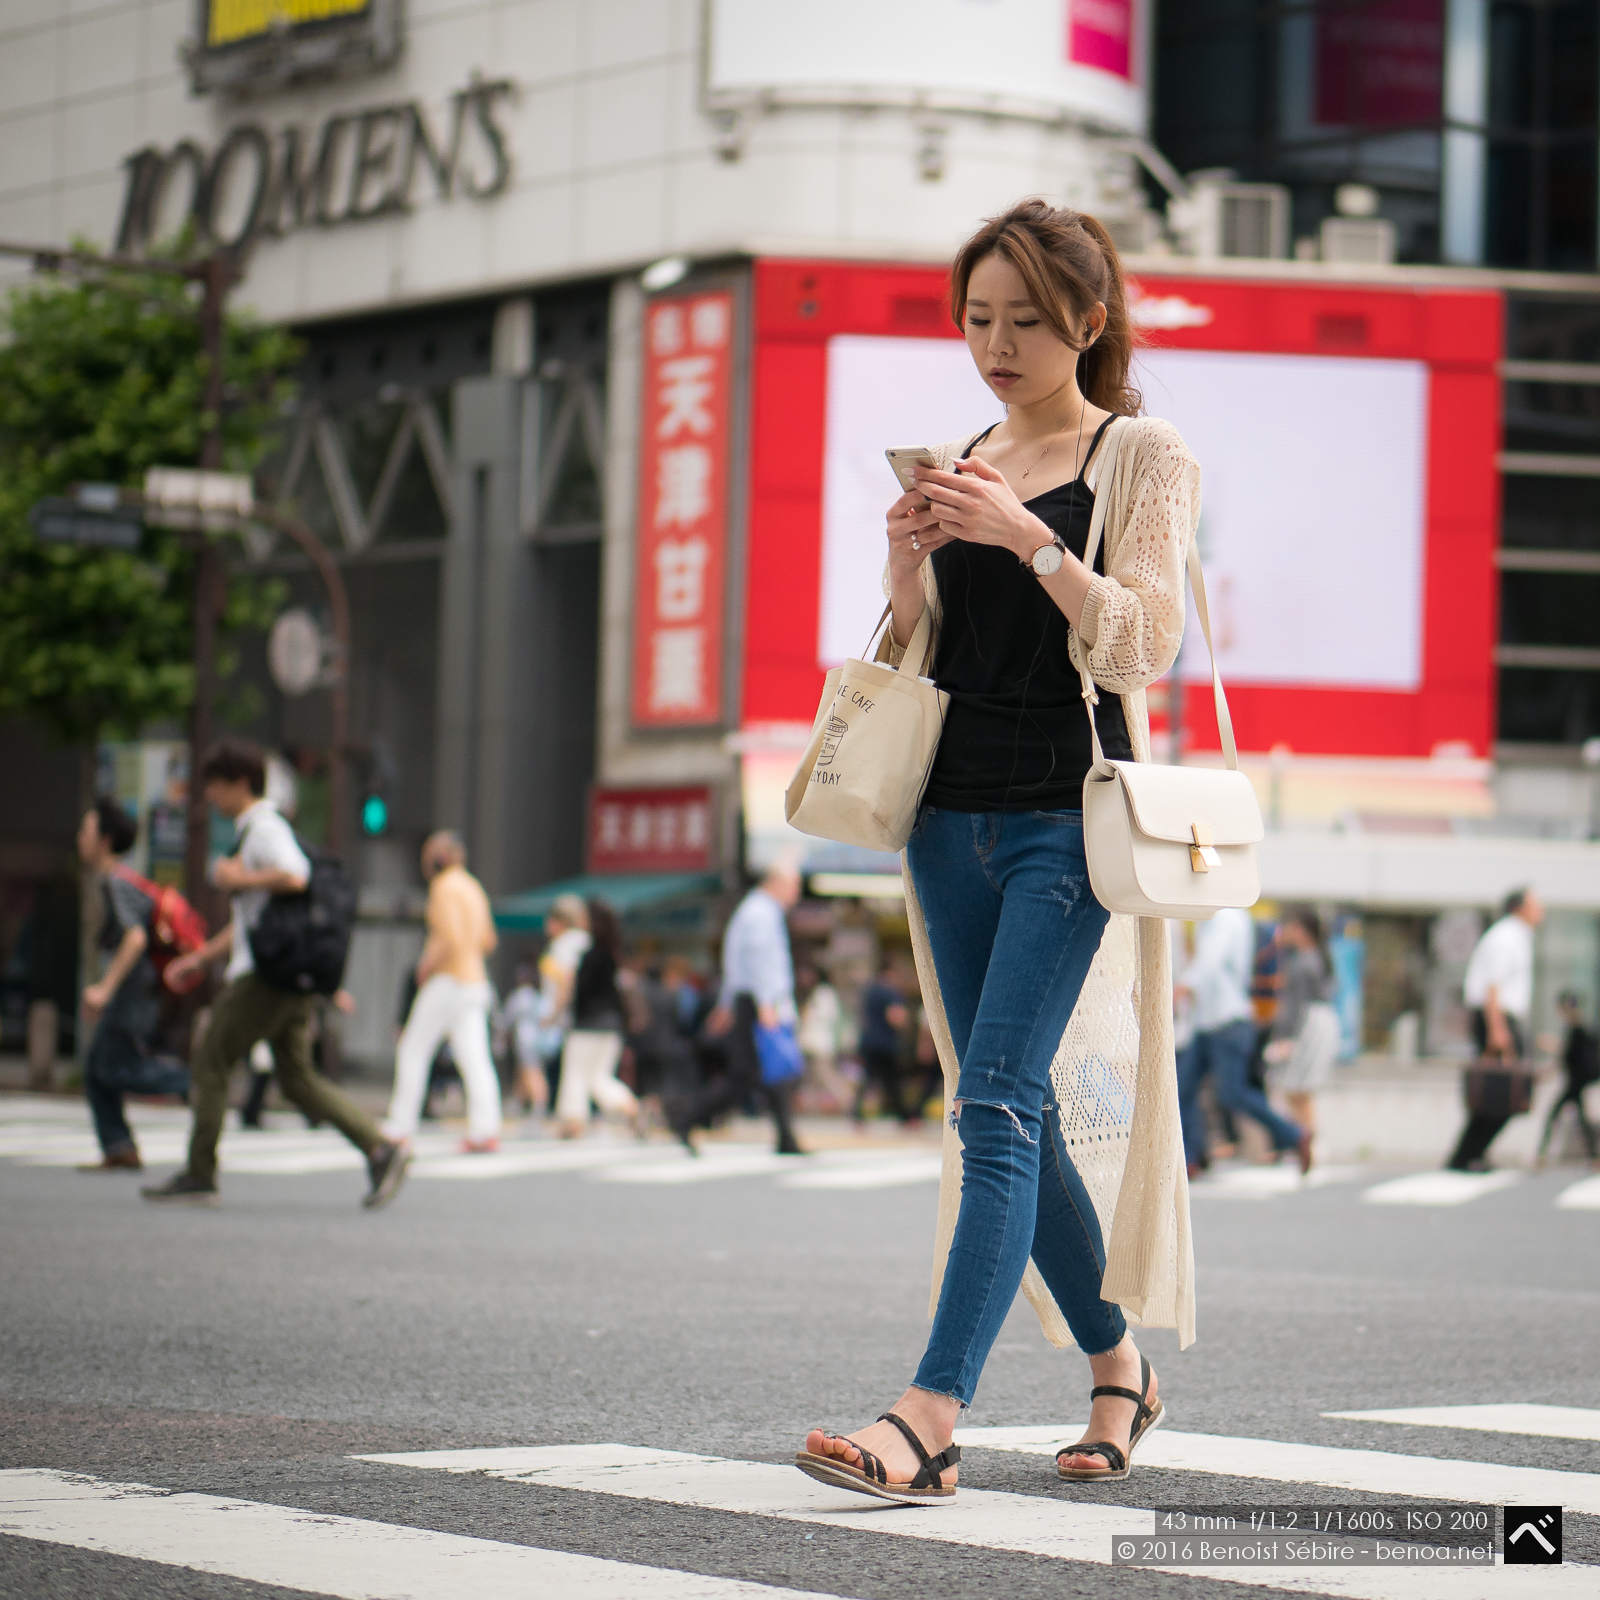 Shibuya Crossing Girl